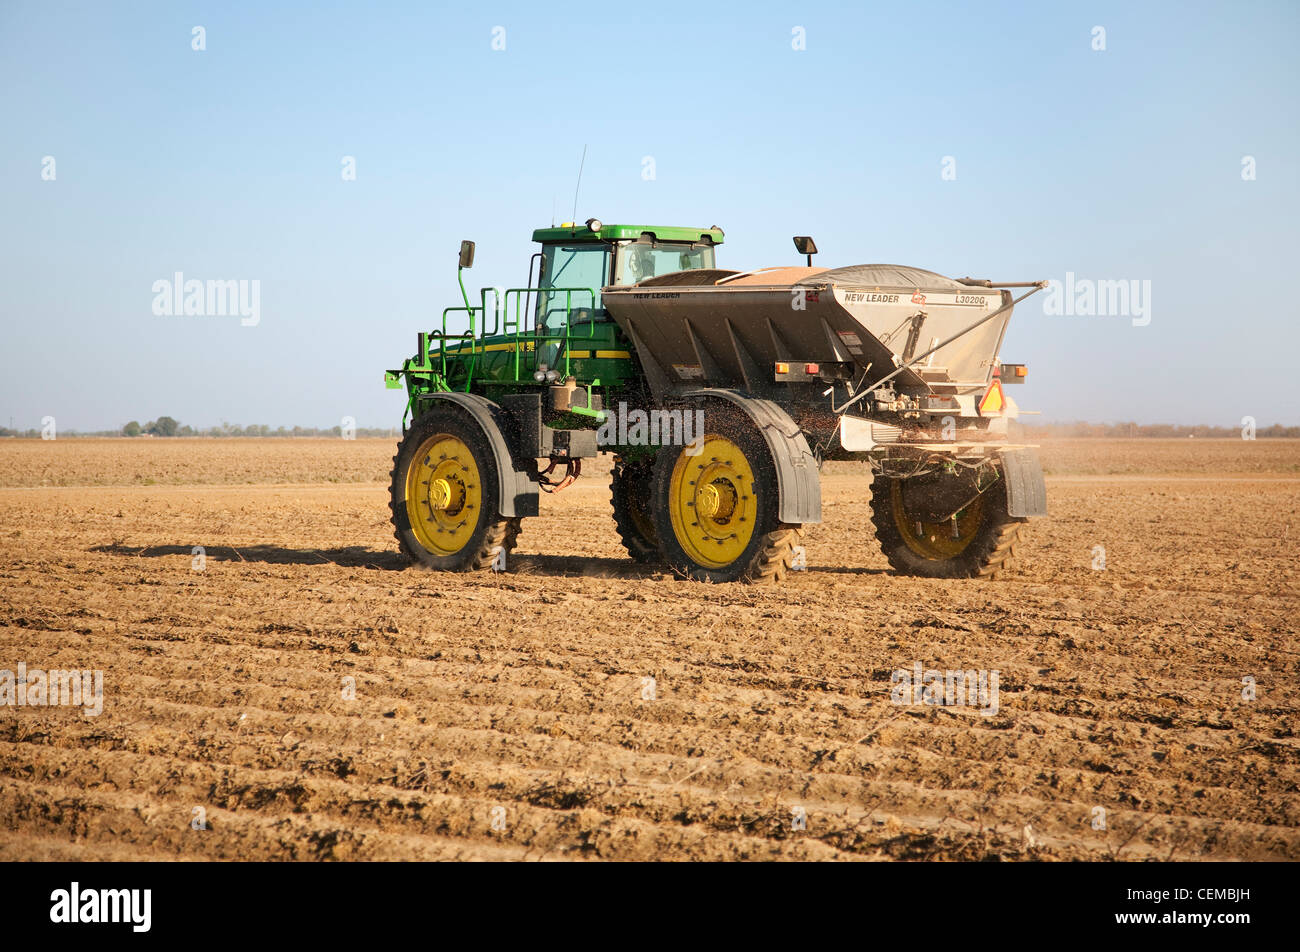 A John Deere 4920 with a New Leader spreader applies dry fertilizer containing Phosphorus and Potassium to a bedded - Stock Image